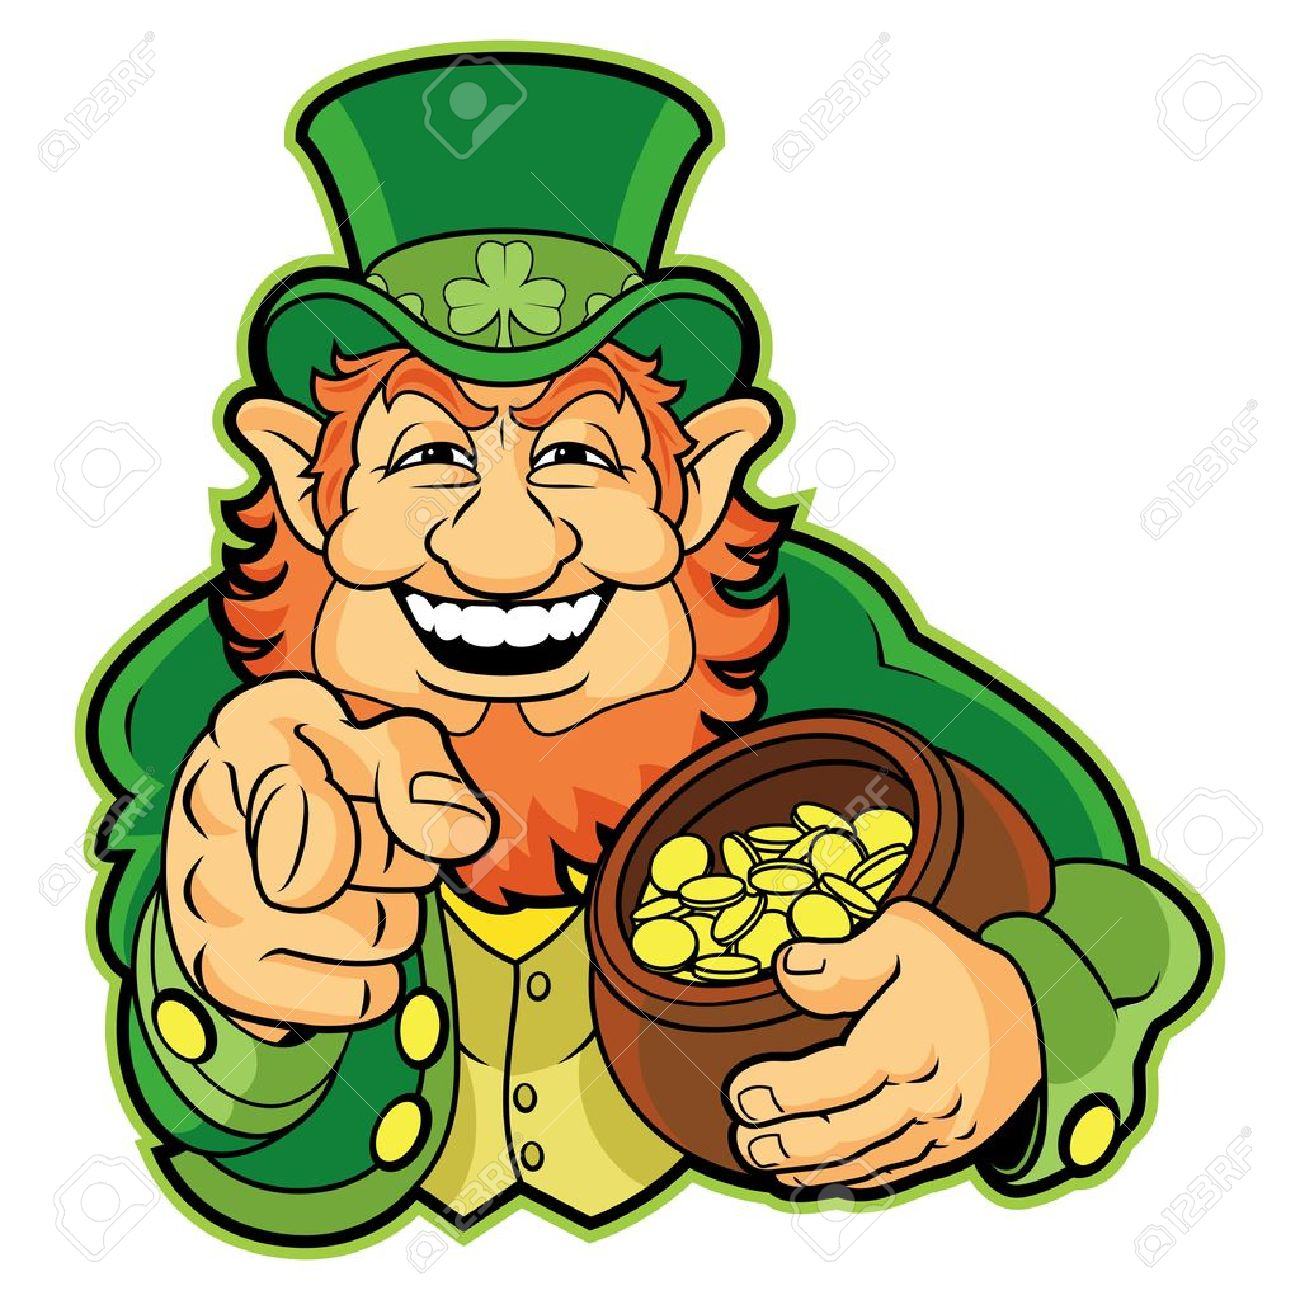 18417 leprechaun cliparts stock vector and royalty free leprechaun leprechaun with a pot of gold illustration altavistaventures Gallery